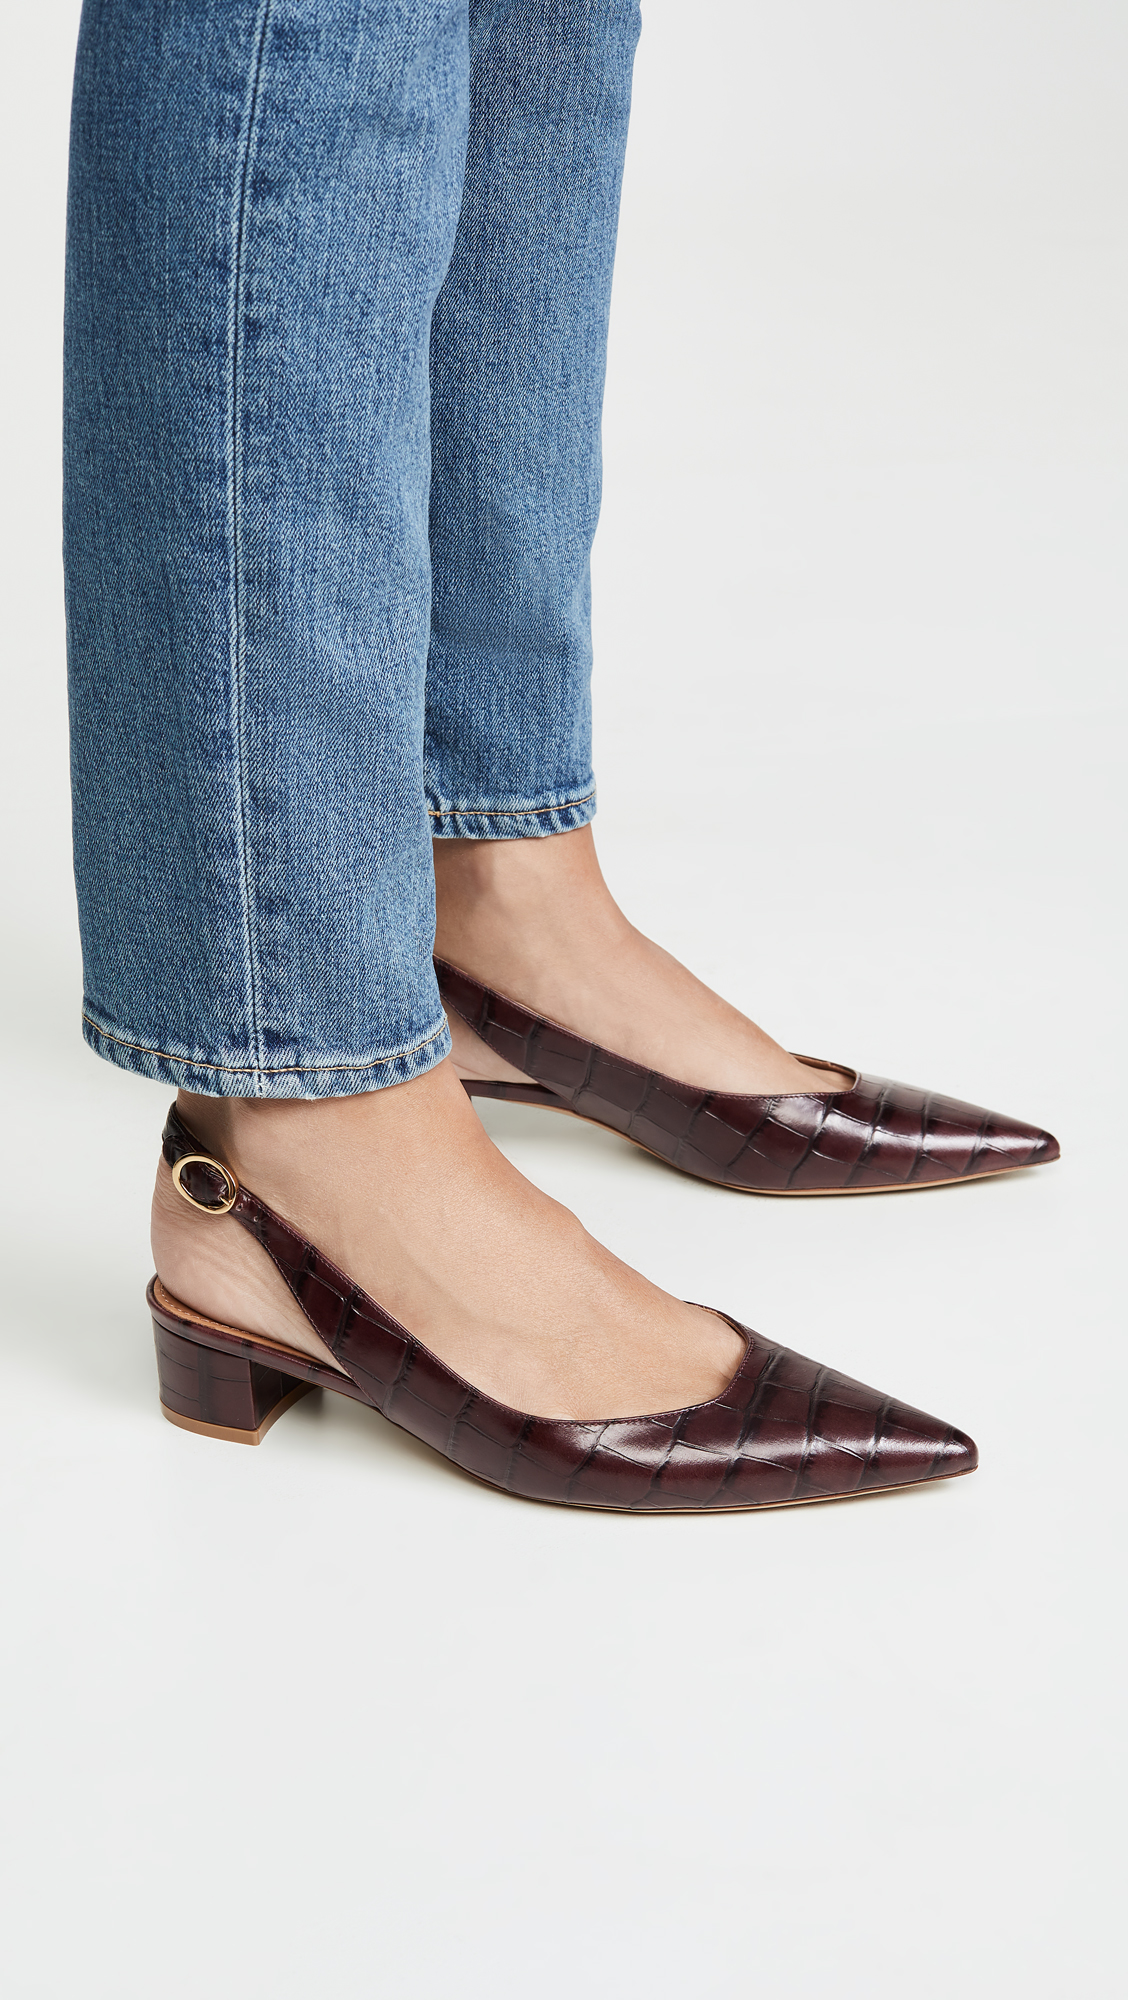 Croc Embossed Slingback Pumps